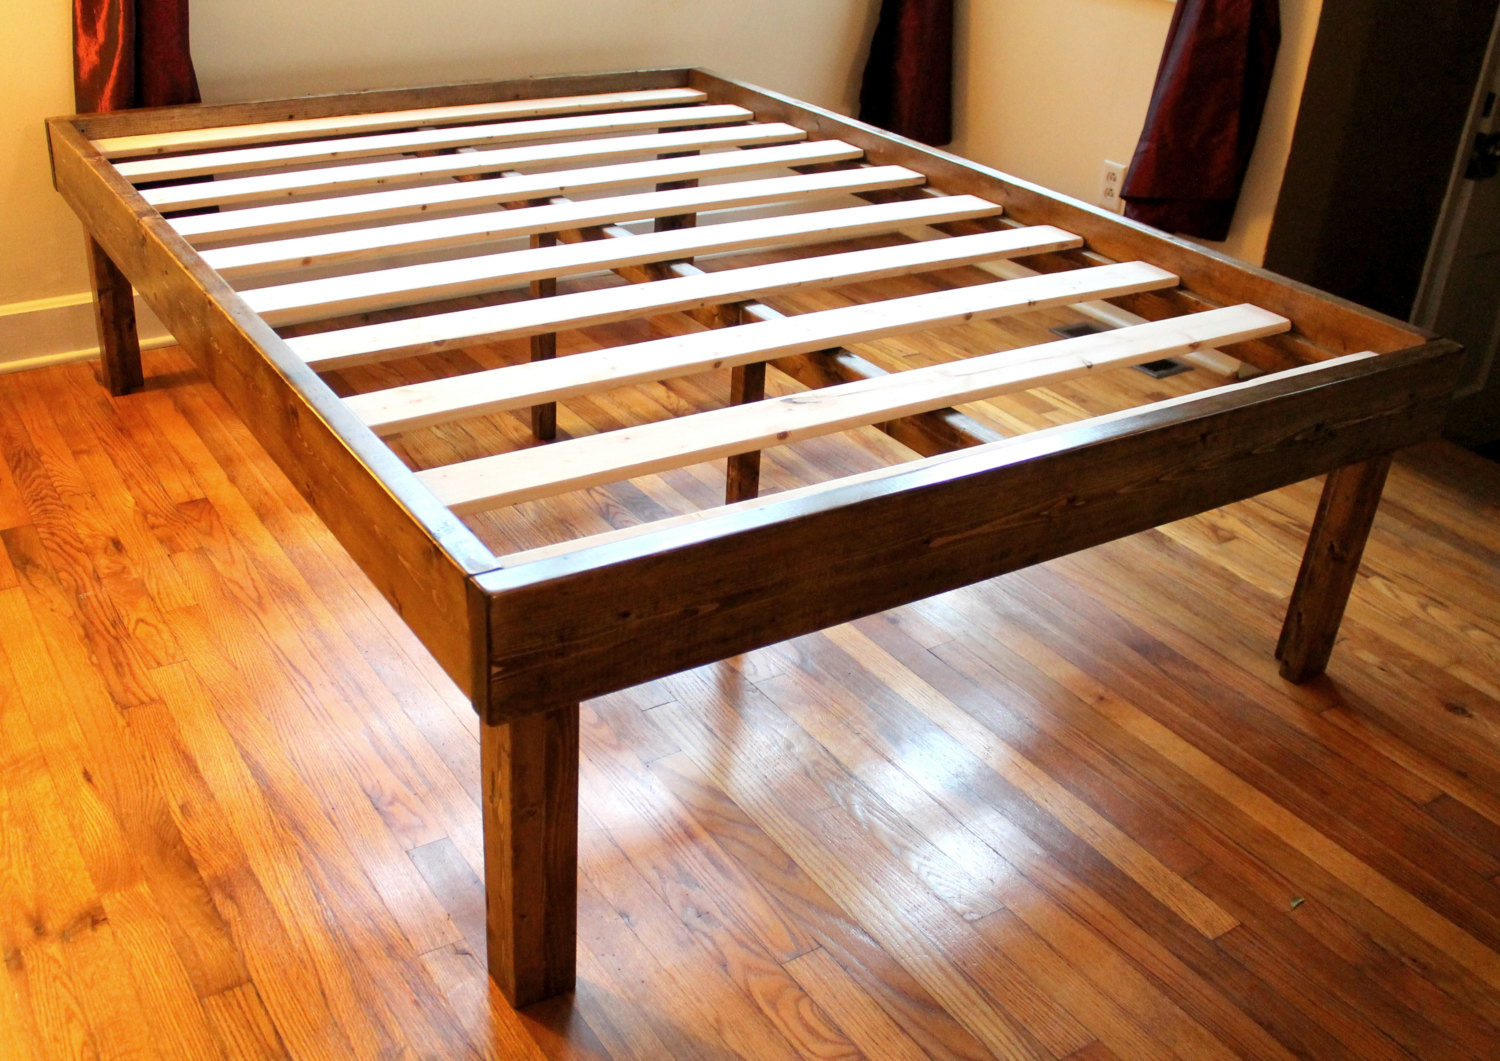 Best ... Rustic Wood Minimalist Bed Frame - Twin Full Queen King. ?zoom wood platform bed frame queen